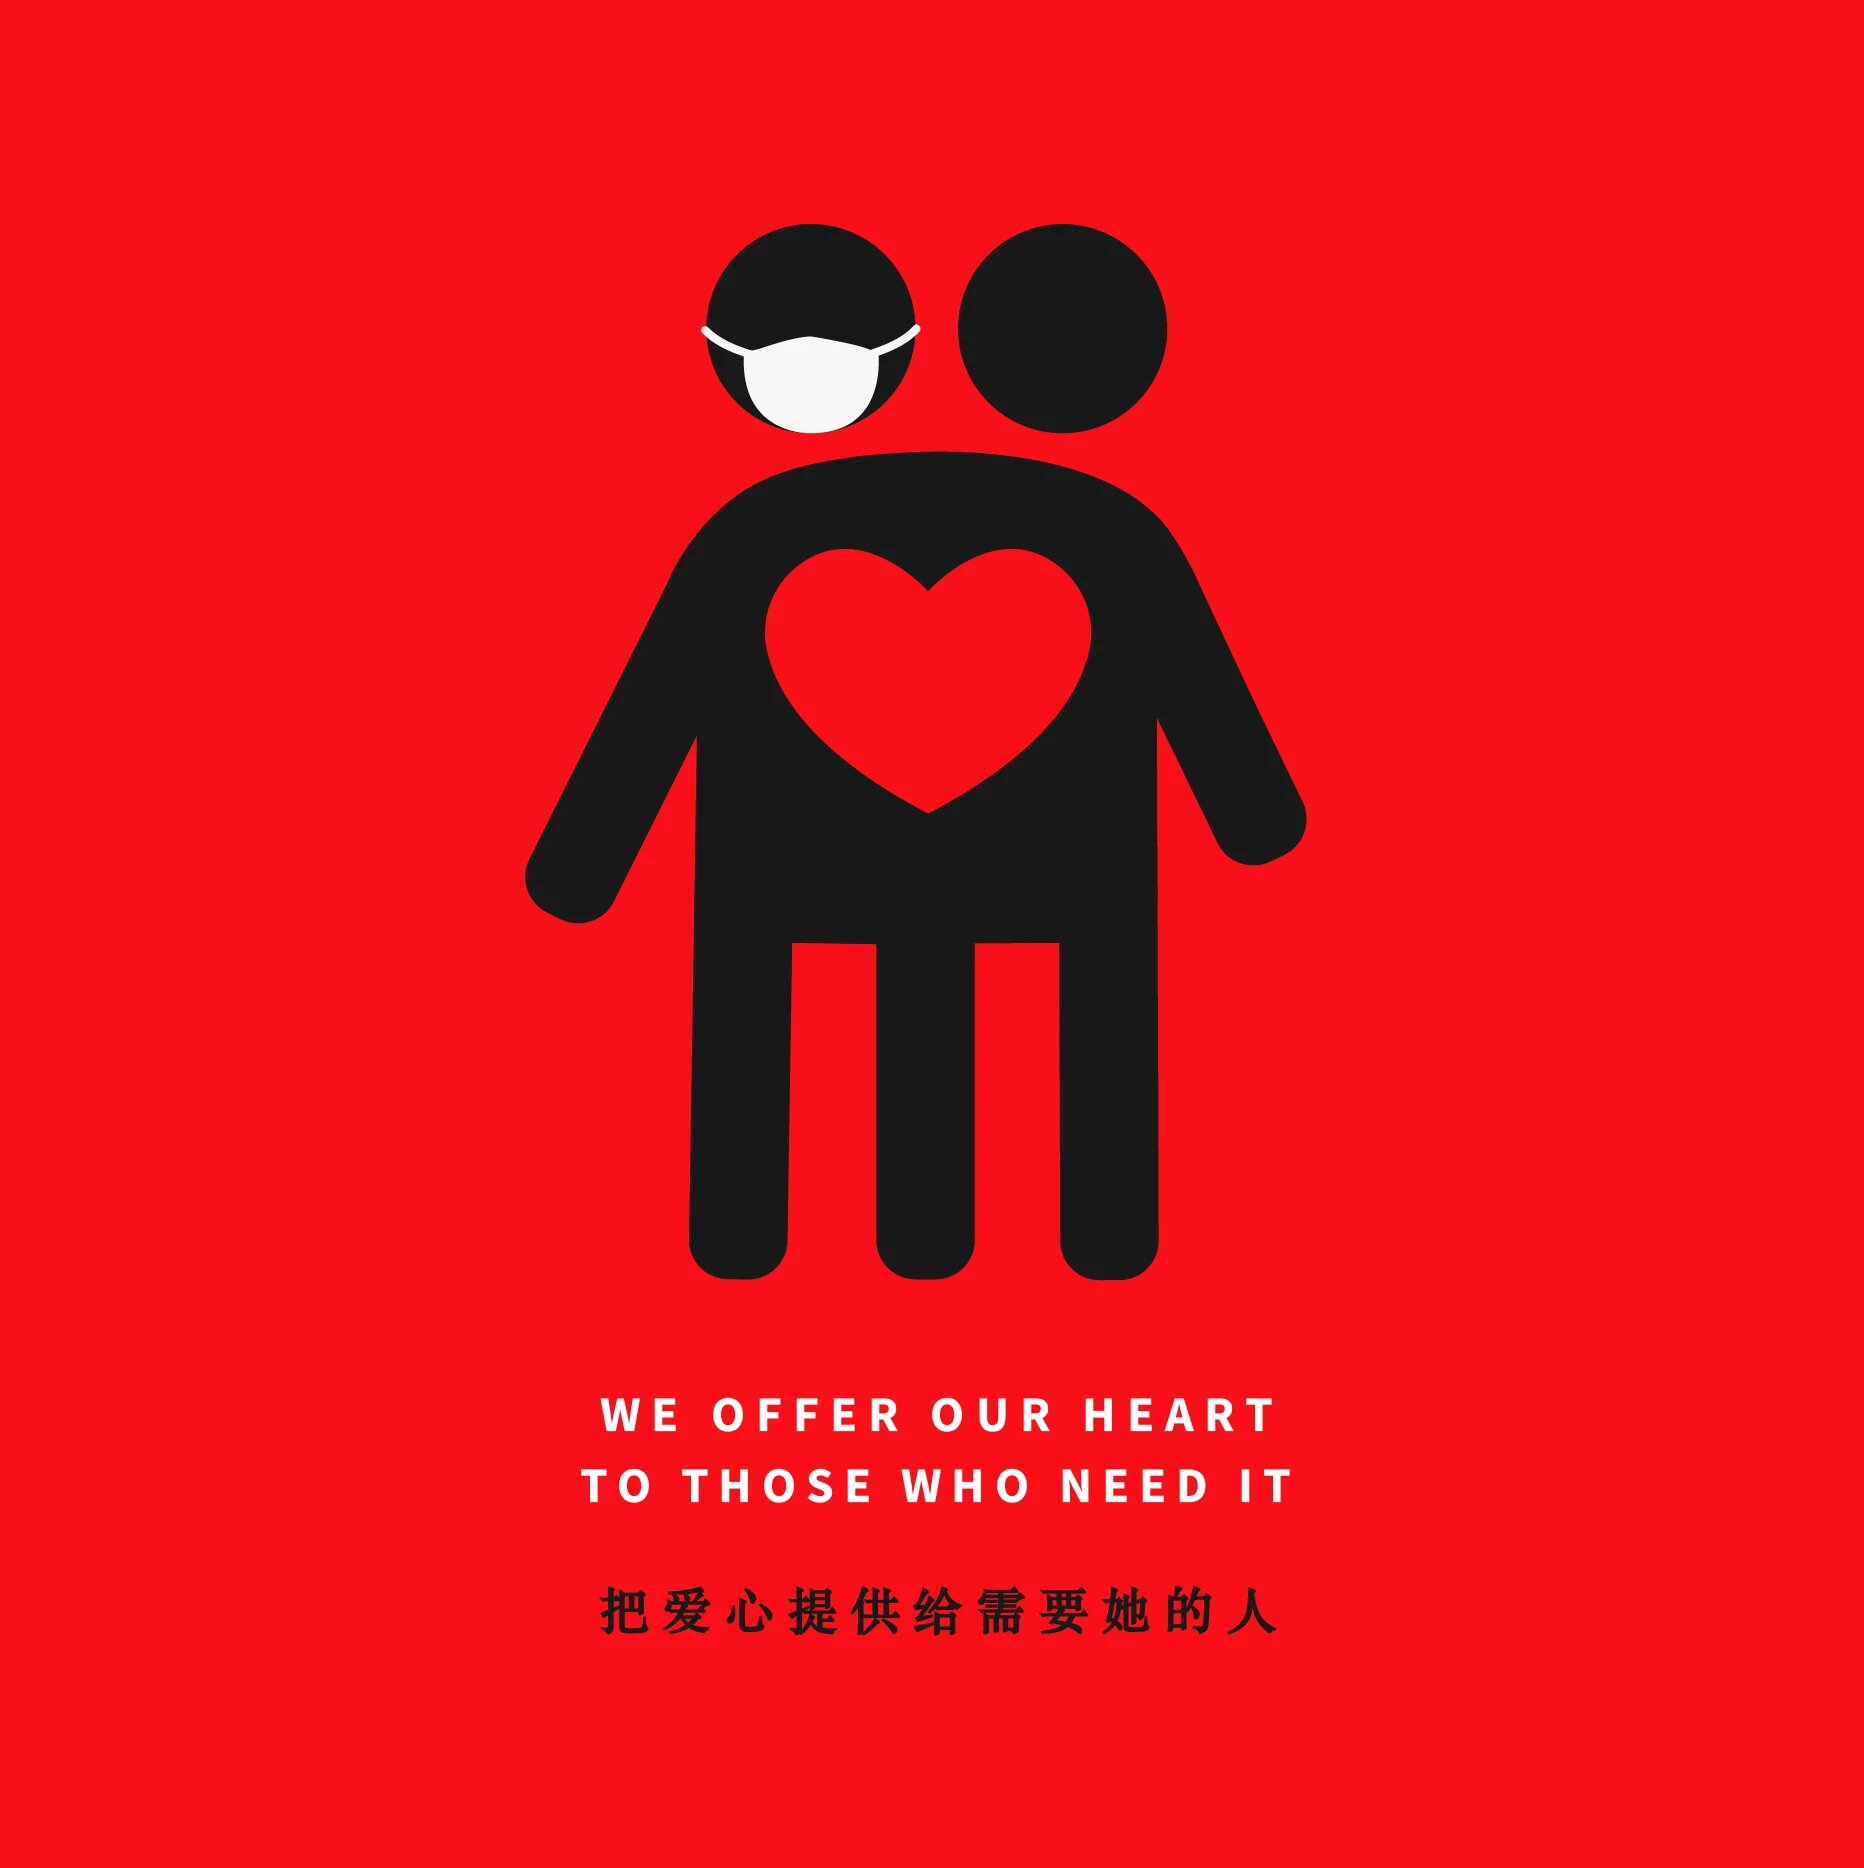 We offer our heart - International Poster ExhIbition by UN AIDS-02